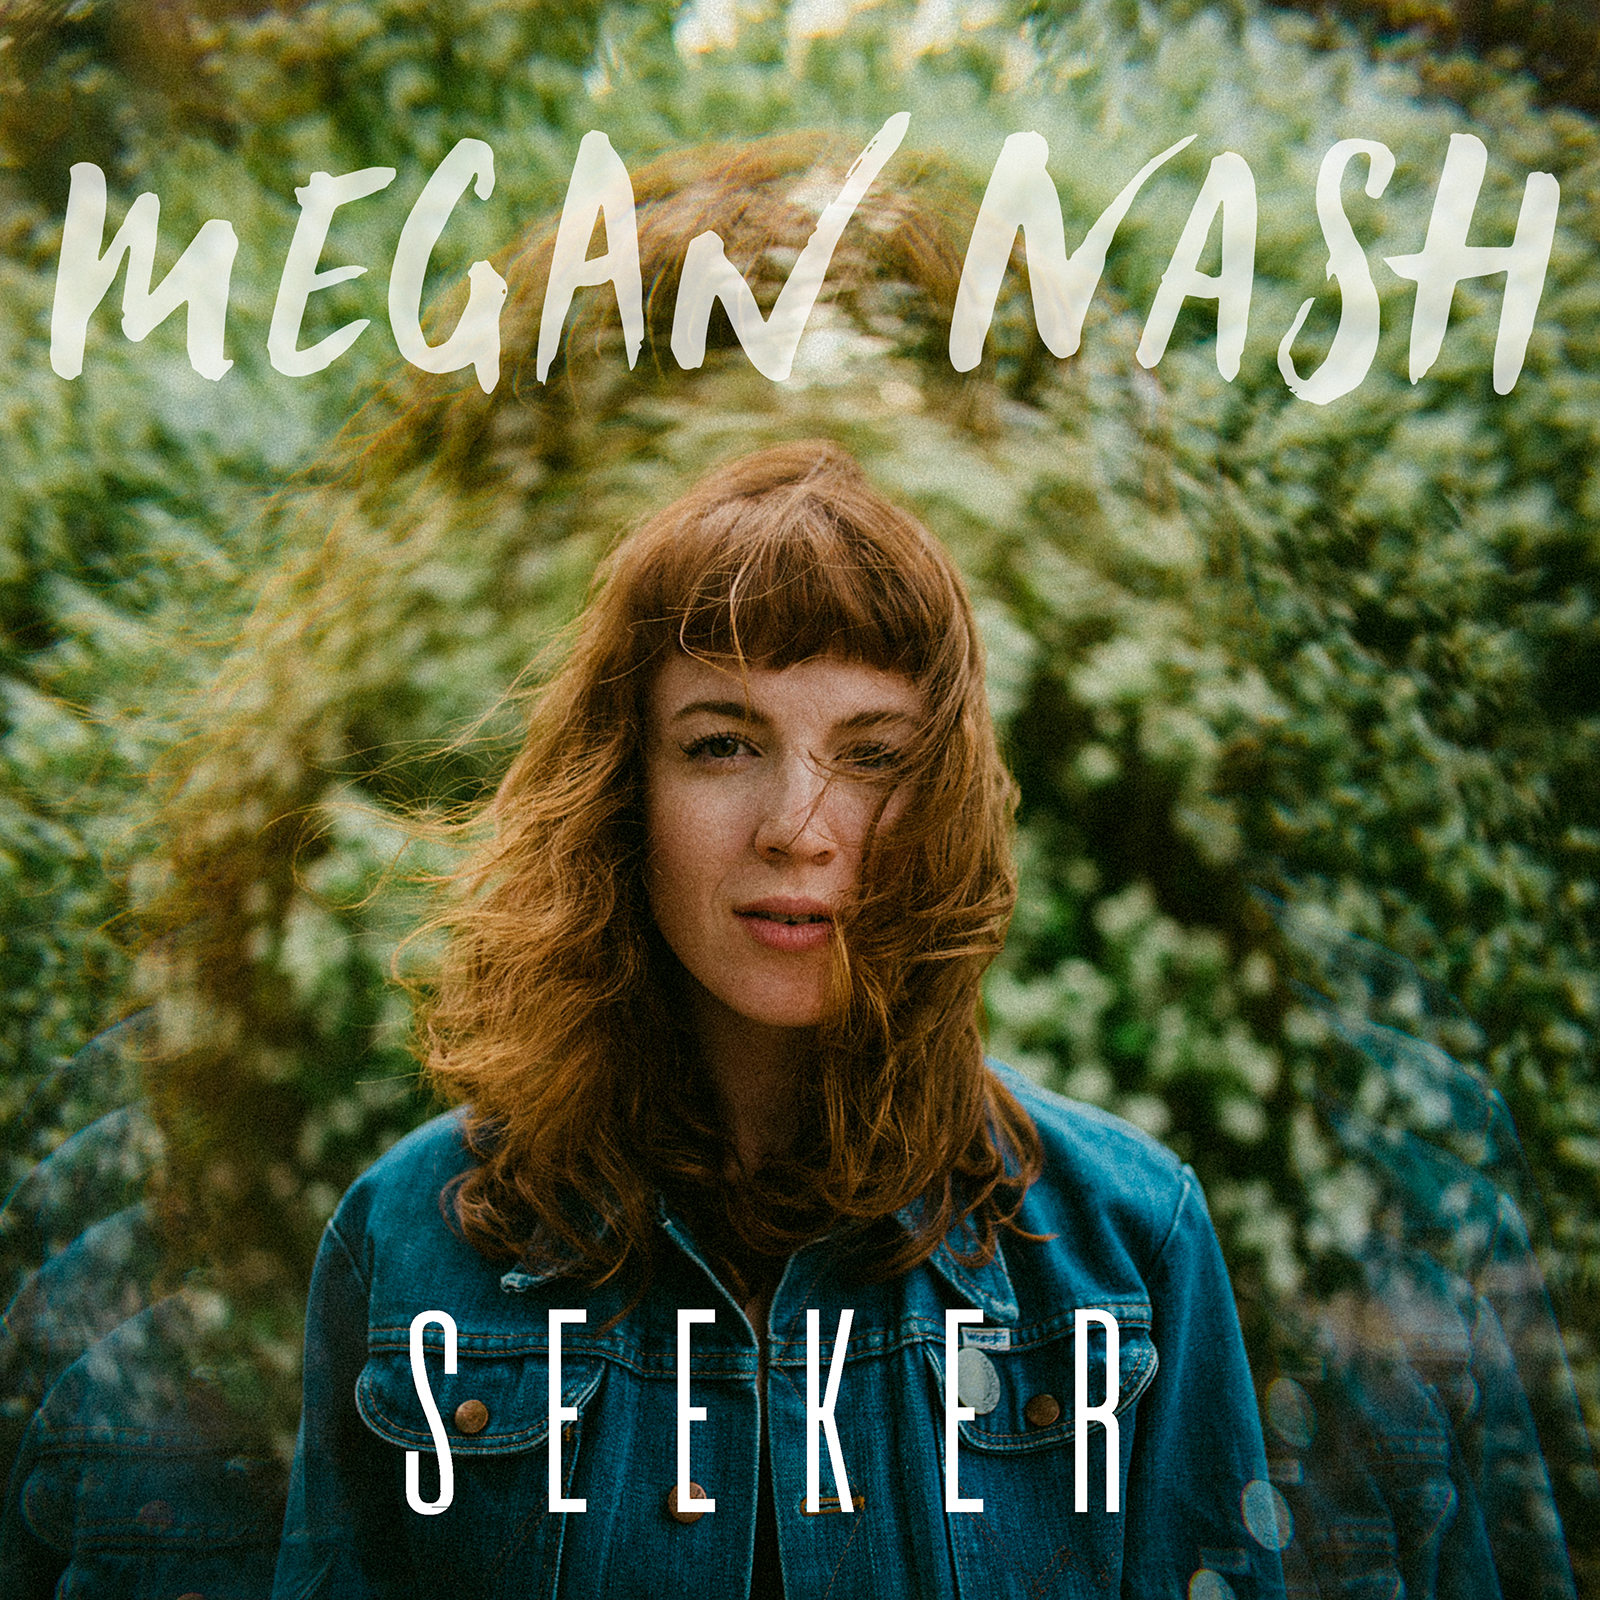 MeganNash - Seeker.jpg